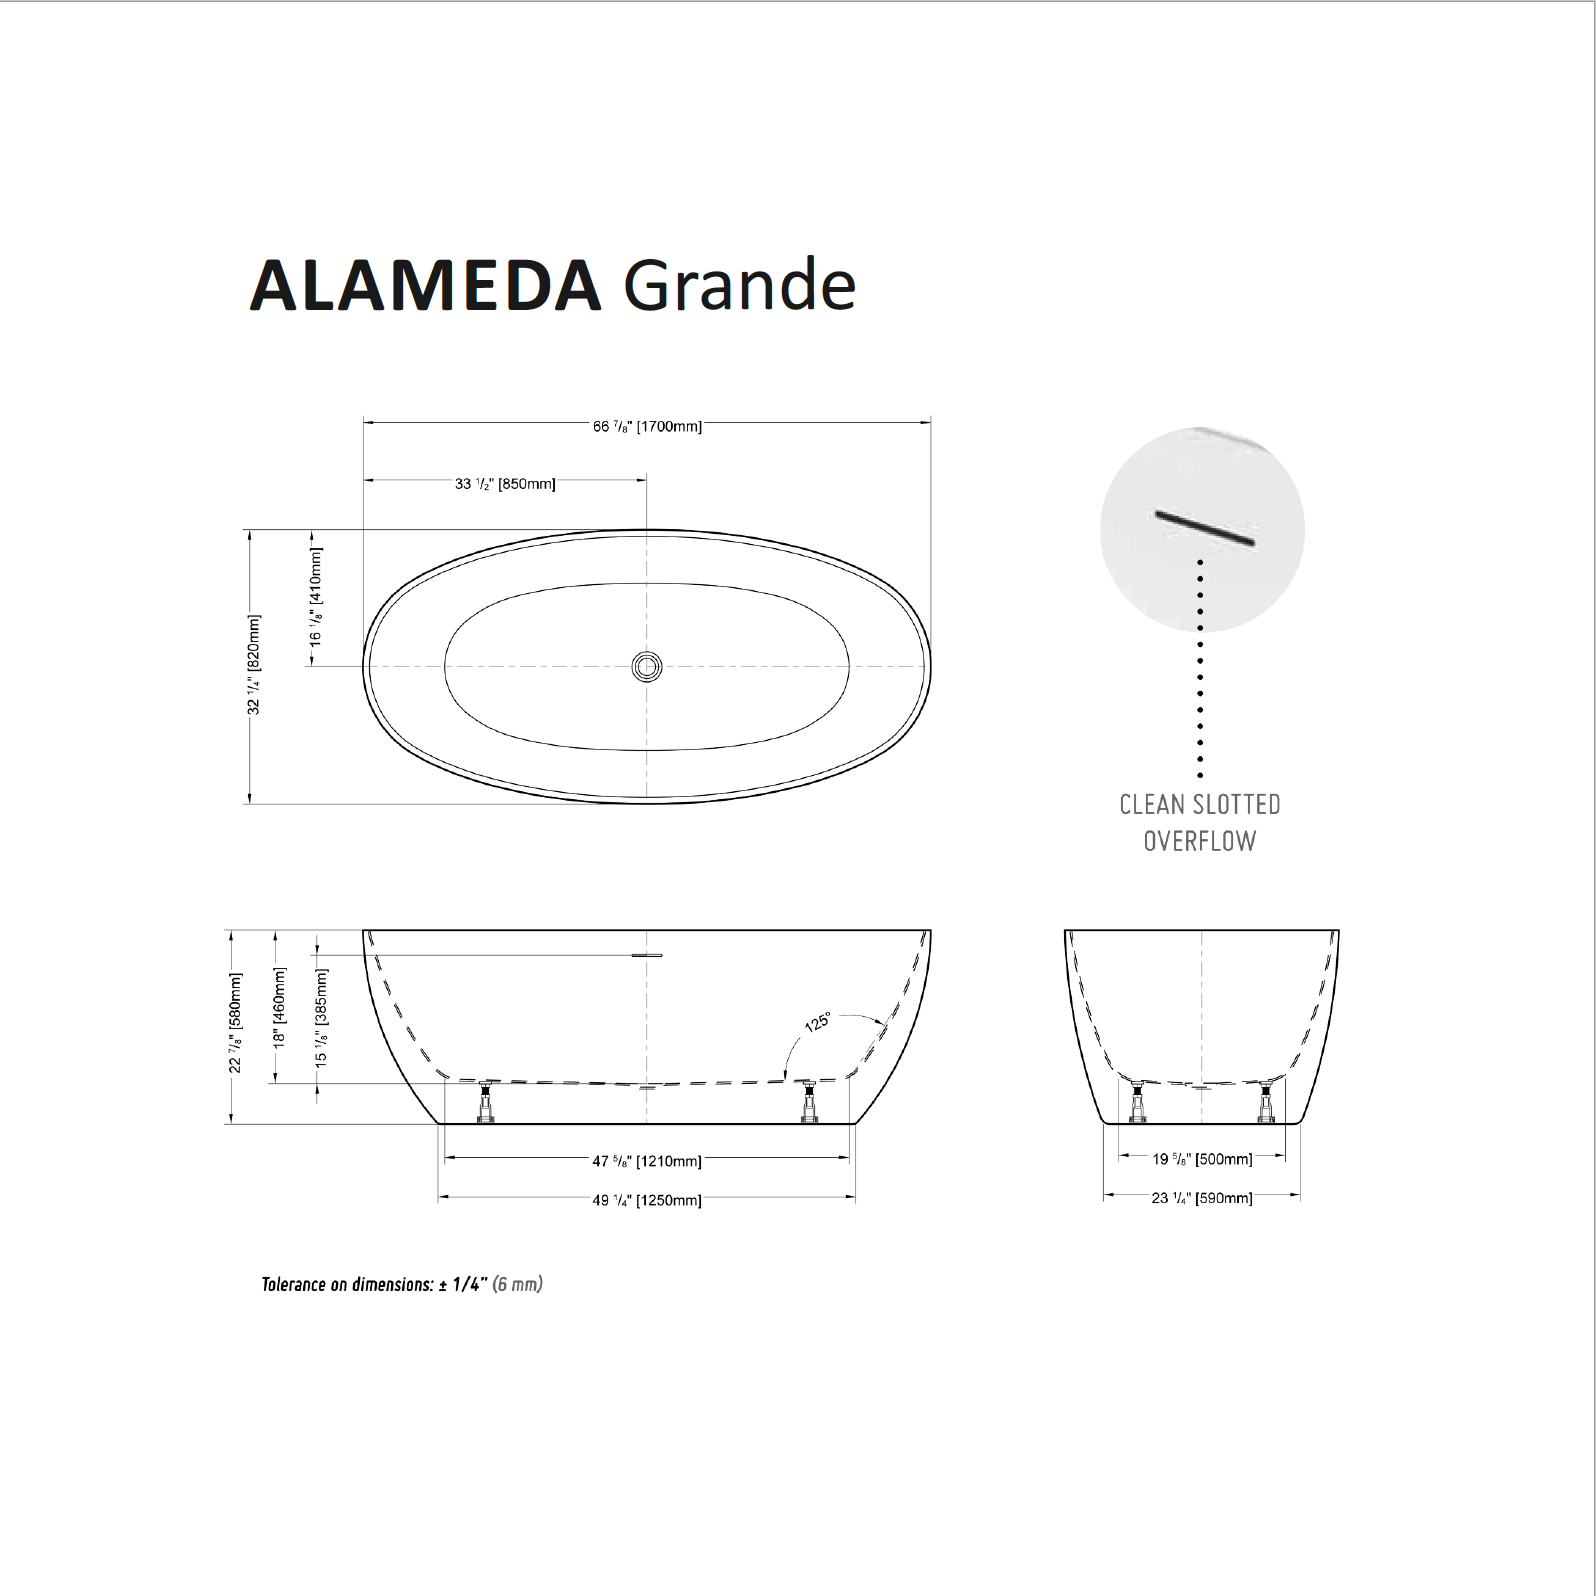 Alameda Grande Tub Specifications